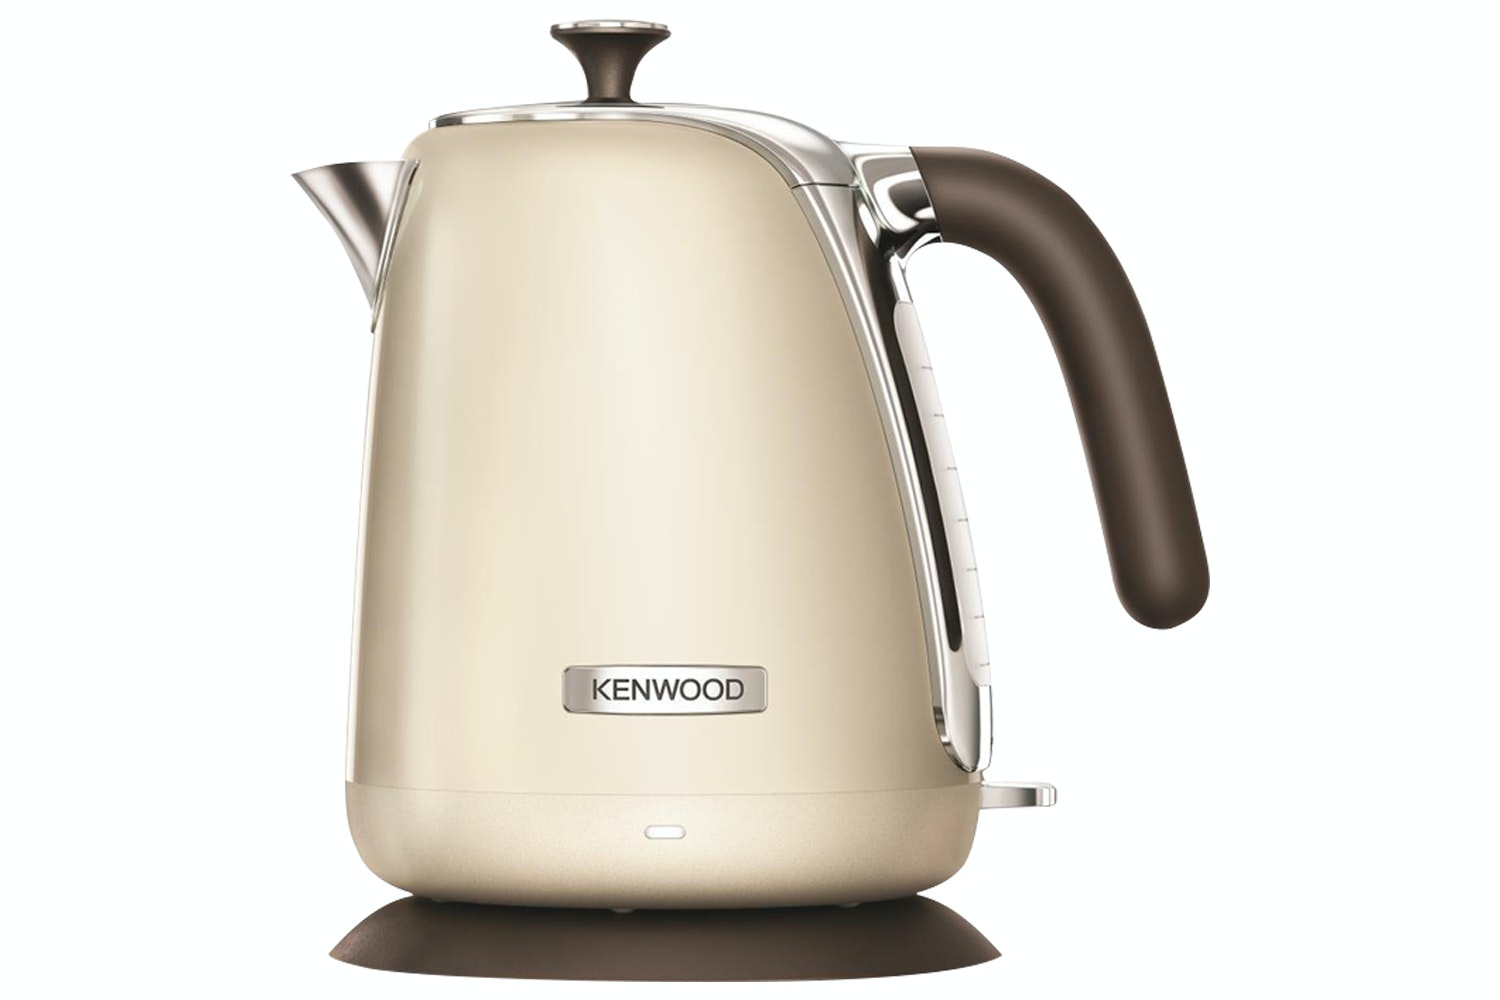 Kenwood 1.7L Turbo Kettle | Cream